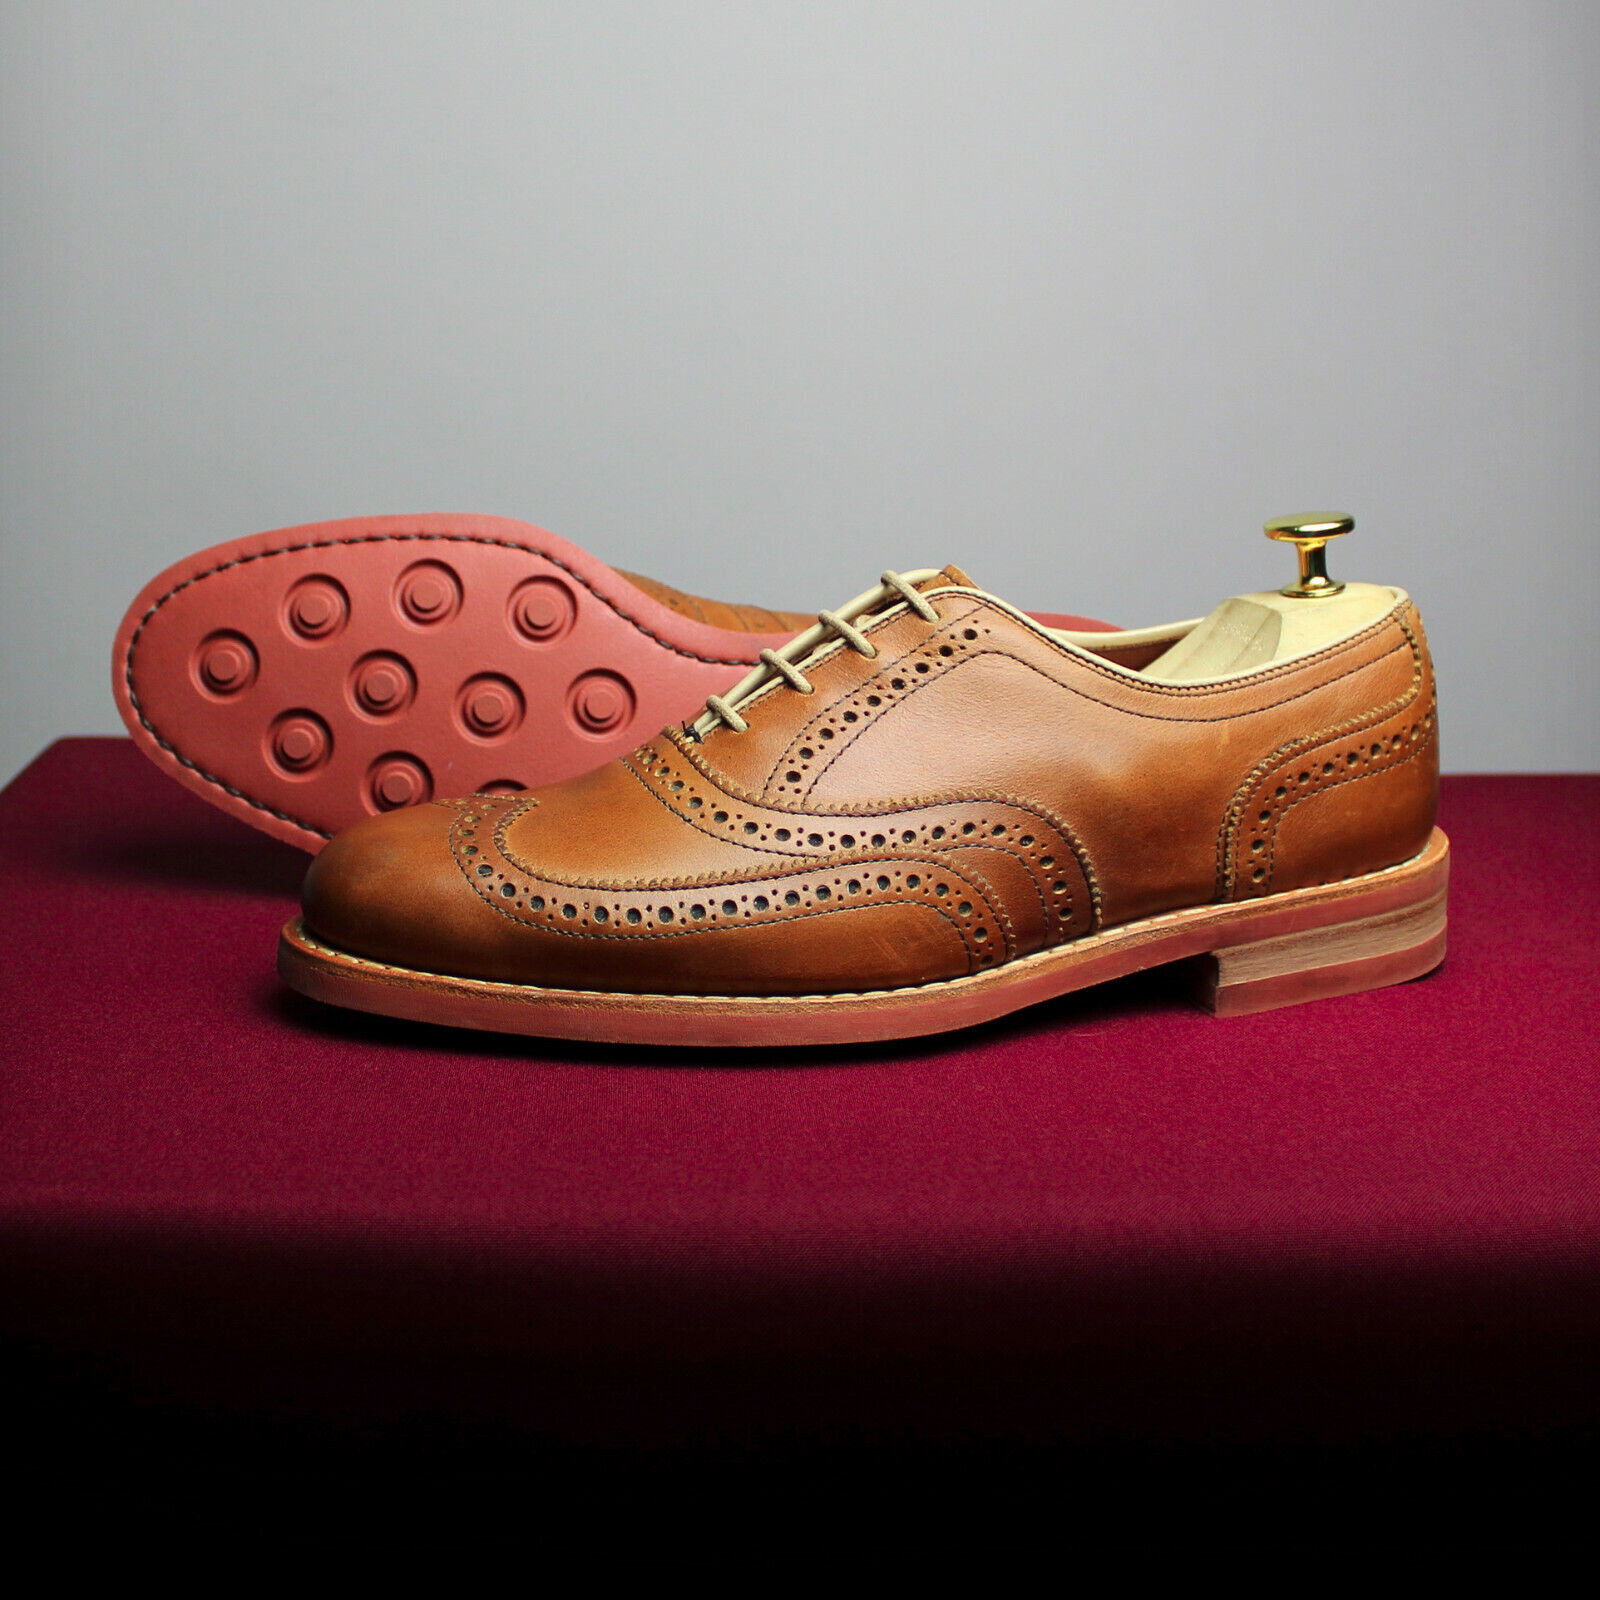 WOLVERINE Leather Brogues size UK 7 US 8 EU 41